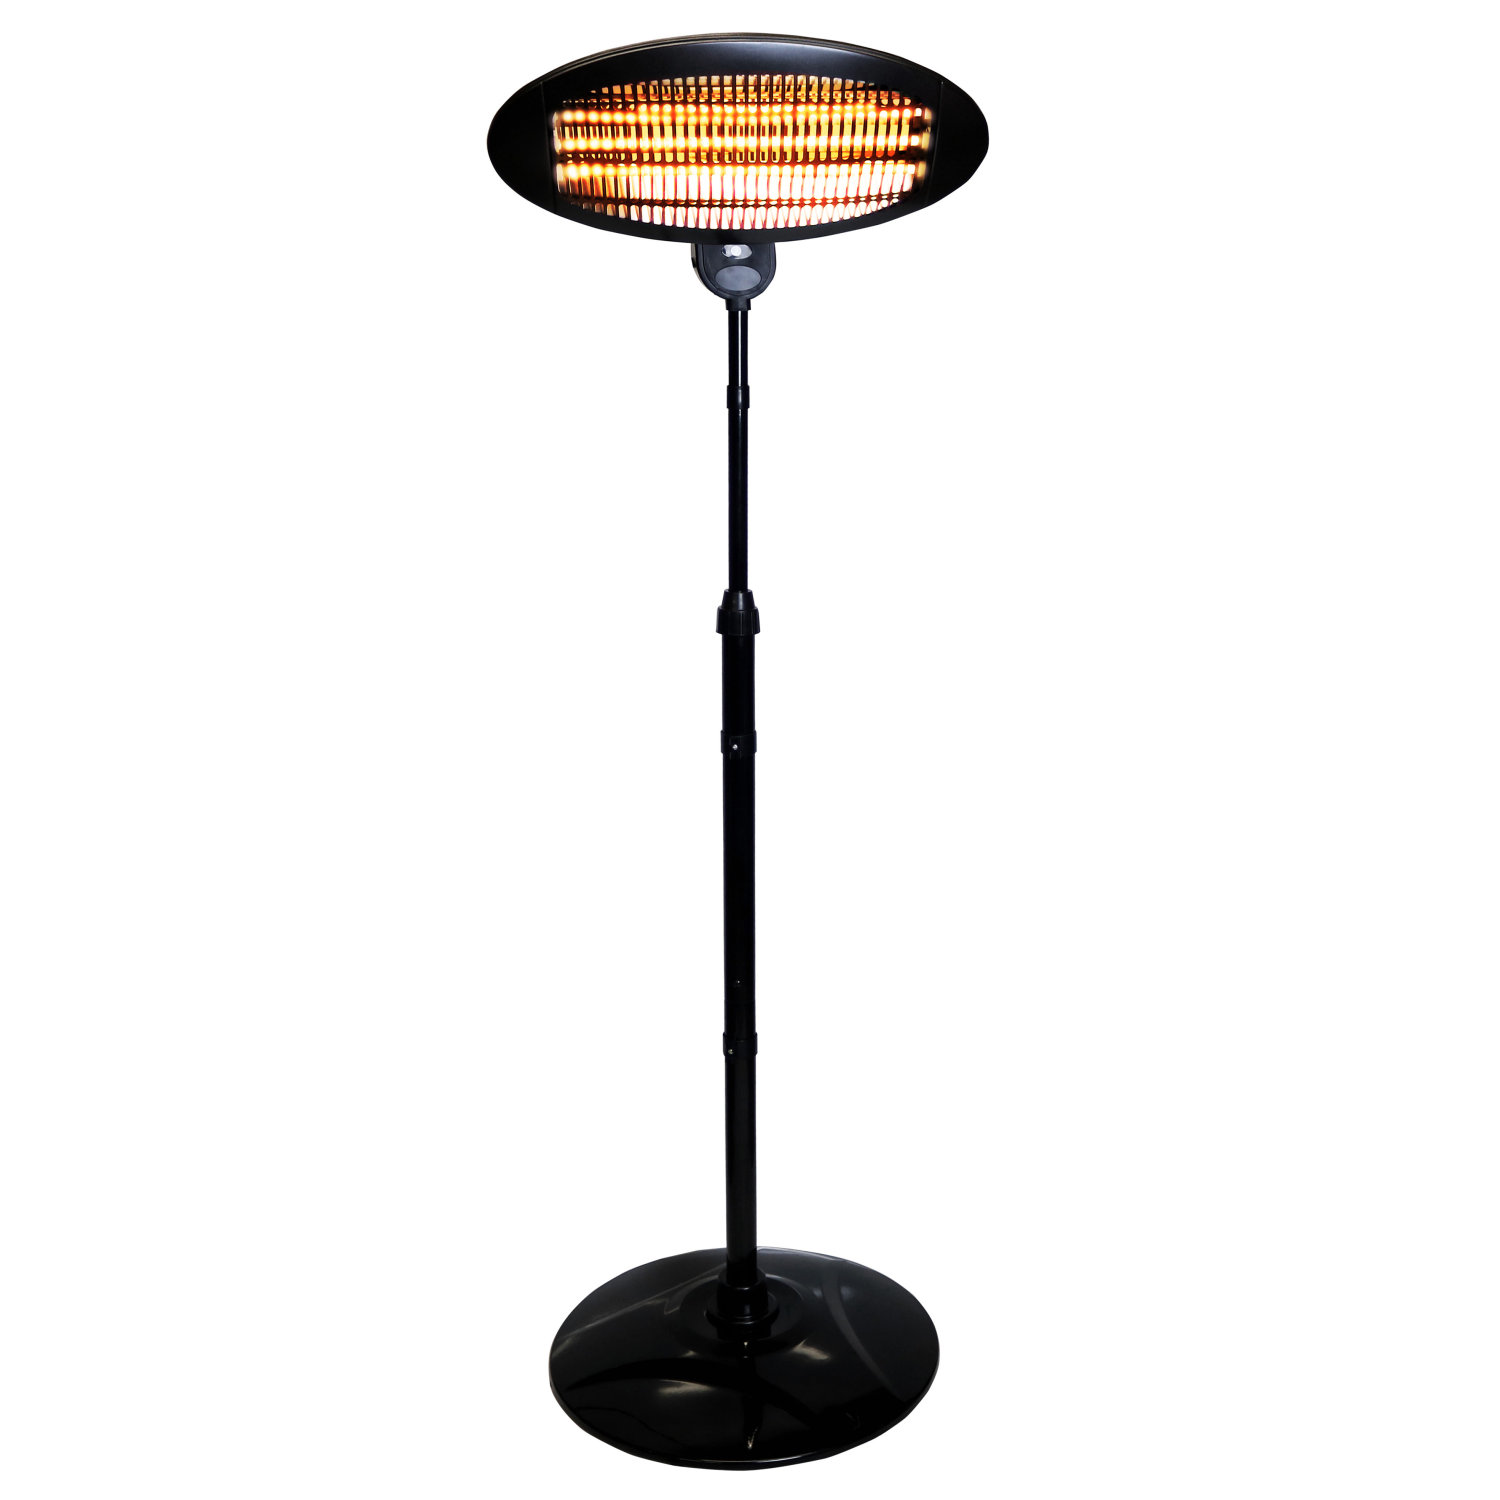 p heater patio alternative htm heaters comfort infrared views model outdoor